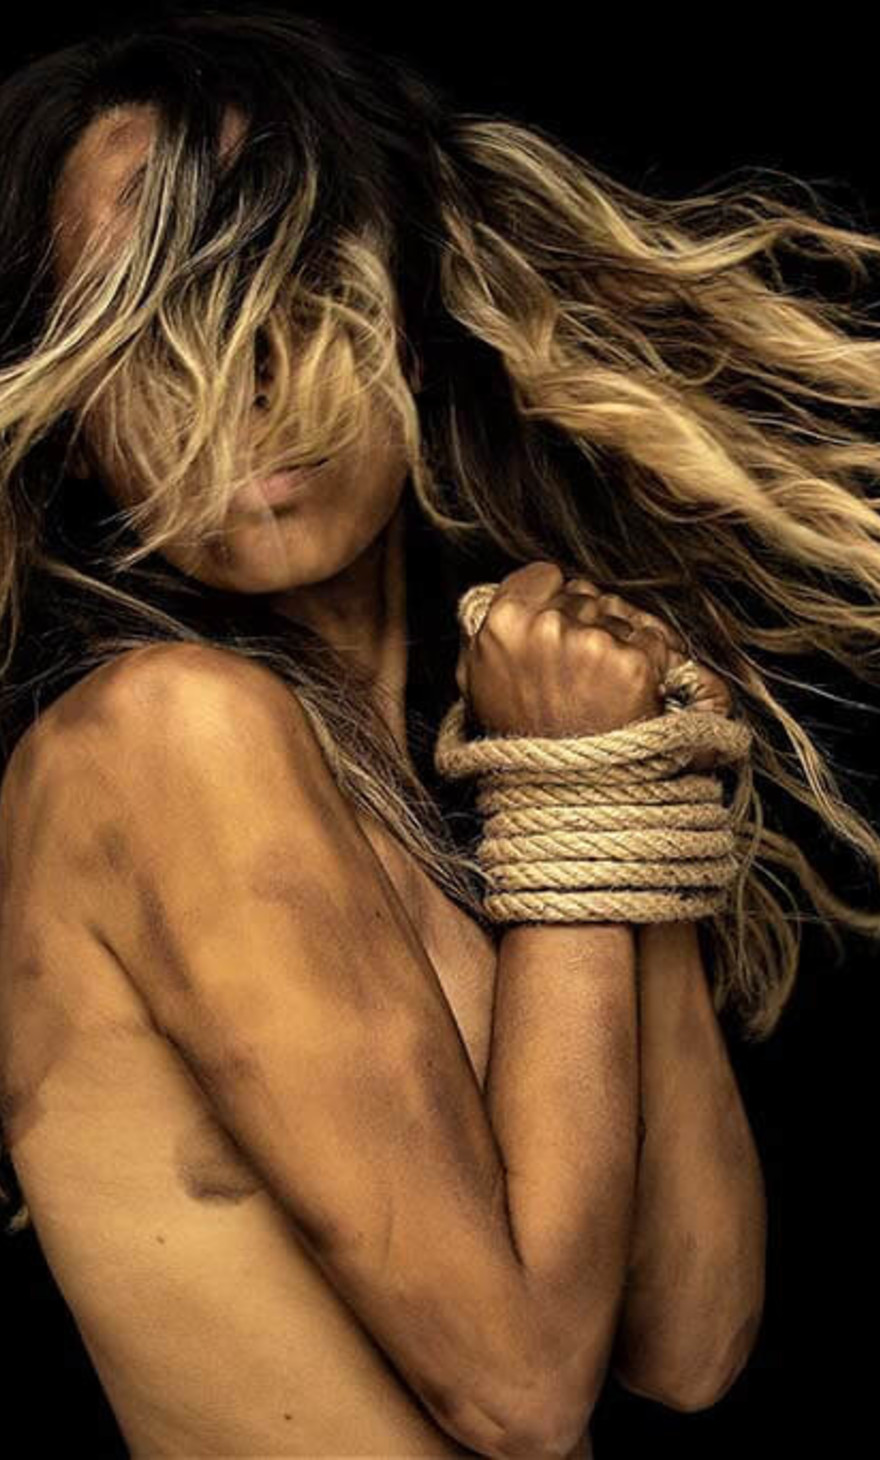 Tied Up Woman